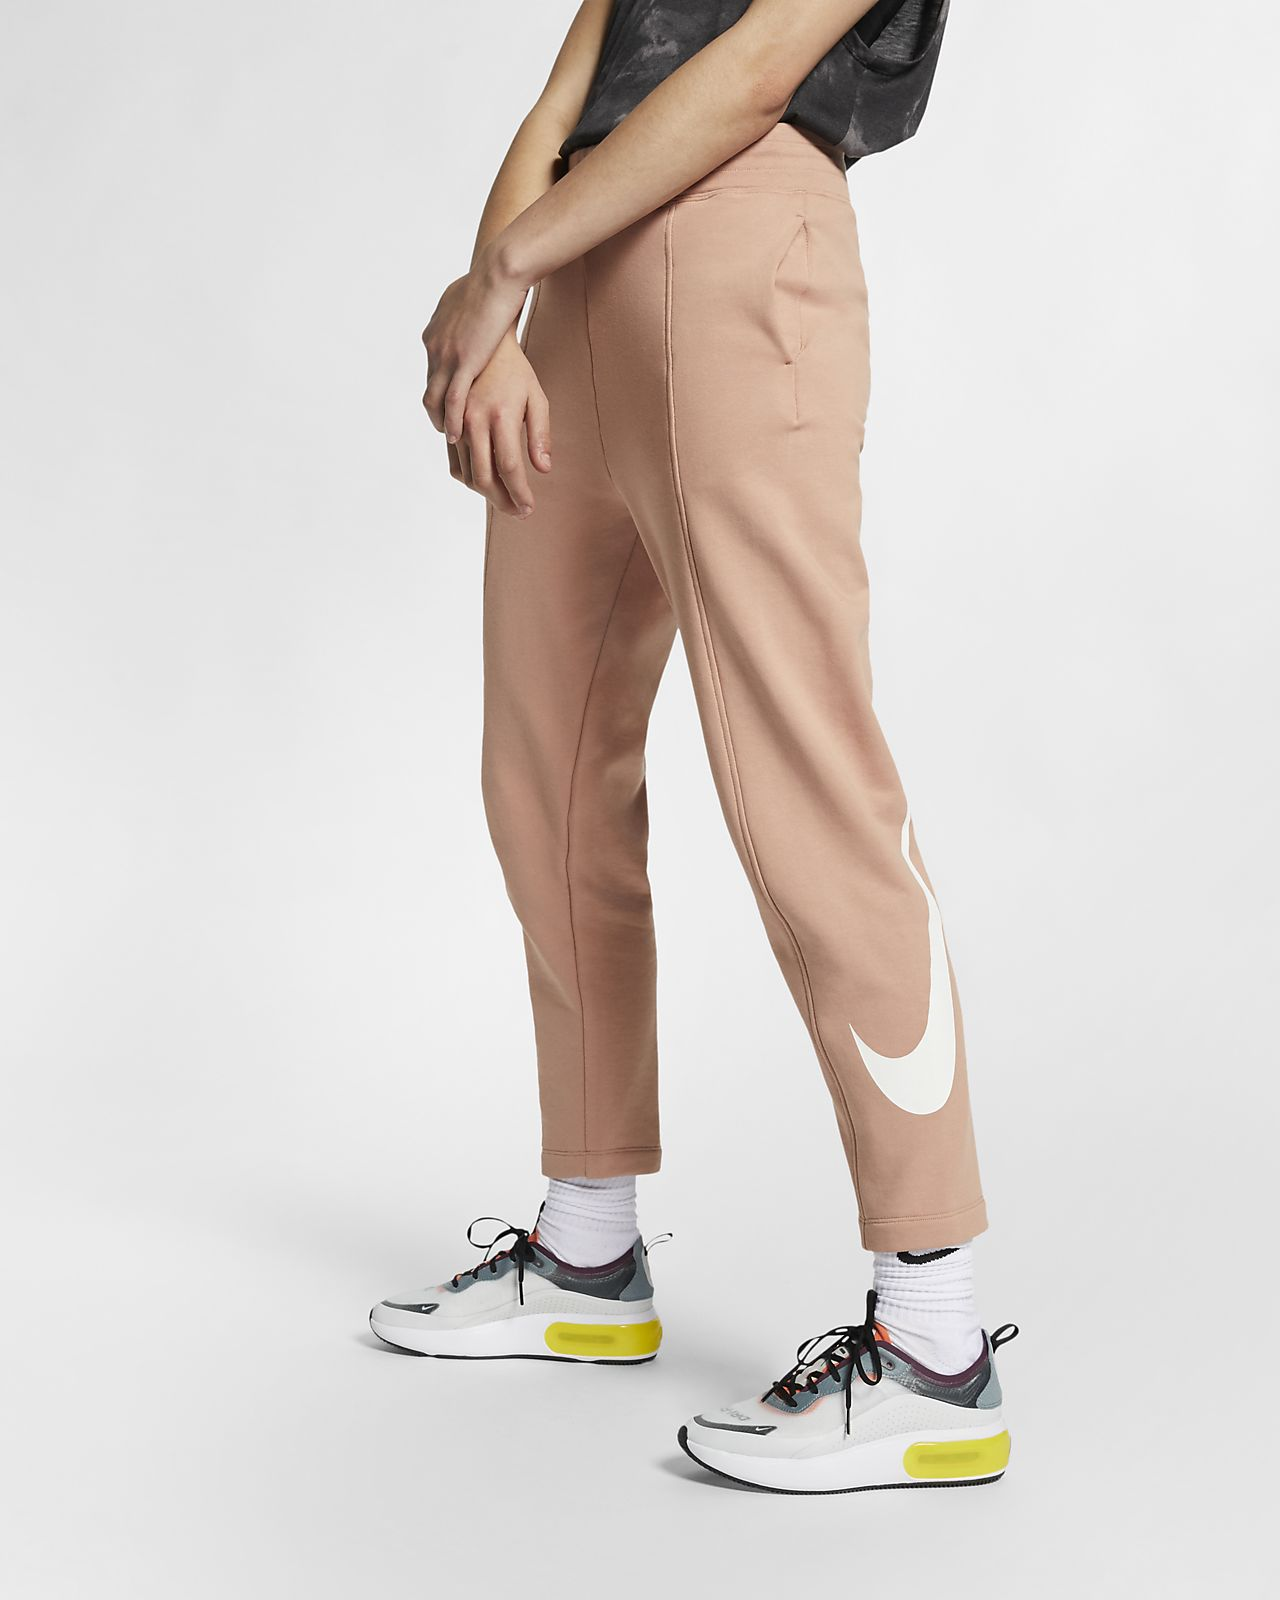 Nike Sportswear Swoosh French Terry Trousers